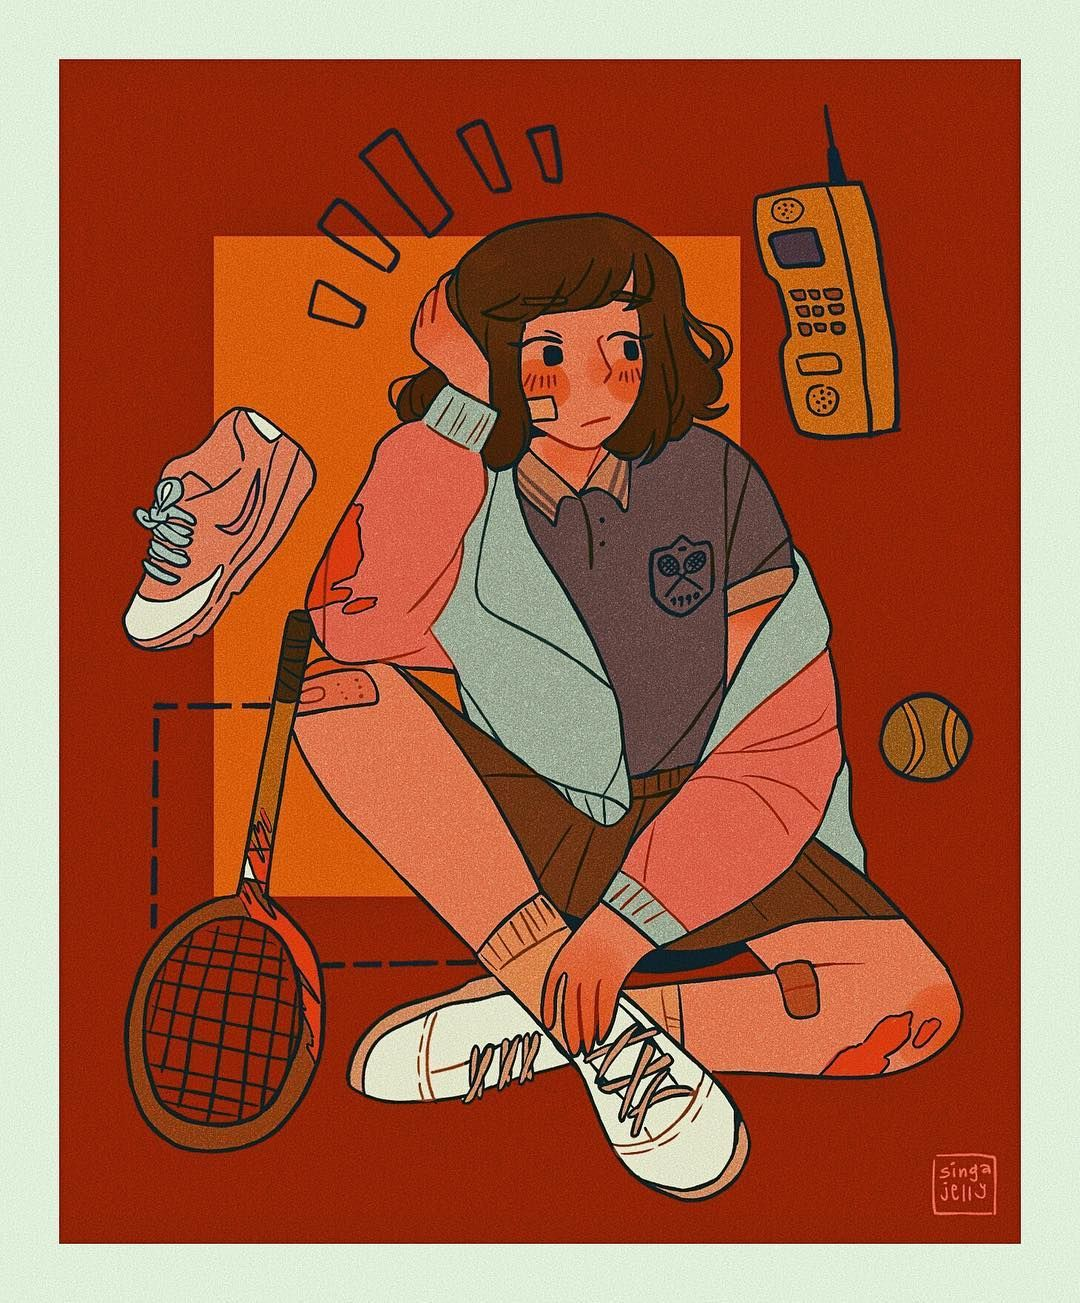 Waiting For Your Friends To Wrap Up For The Night In A 90s Tennis Club Tennisvintage Illustration Vintageaestheti Character Design Art Aesthetic Art